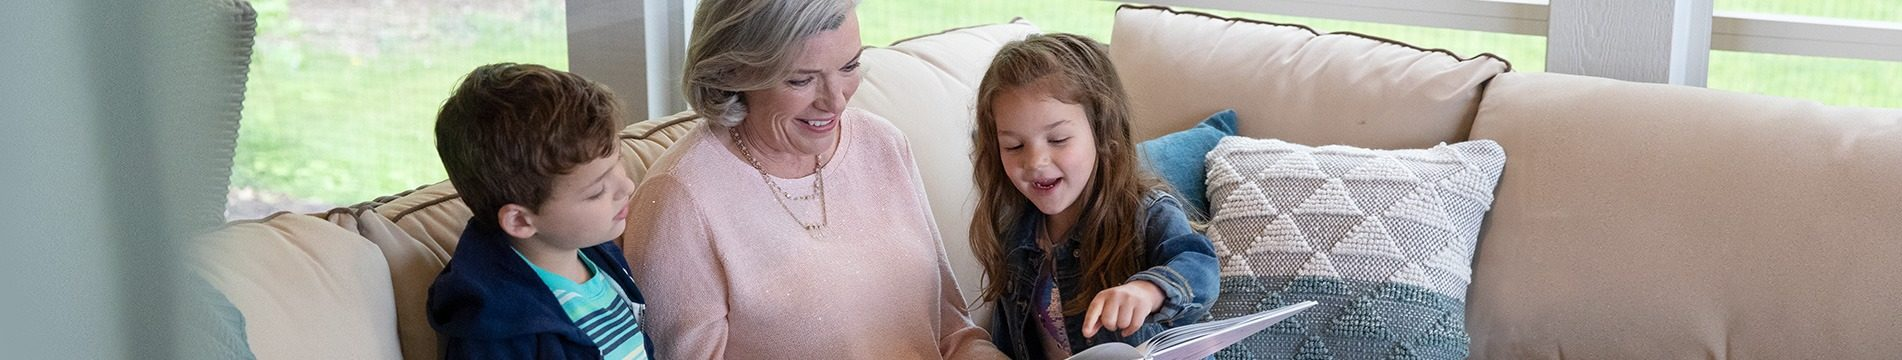 A grandmother reading to her two grandchildren on a couch